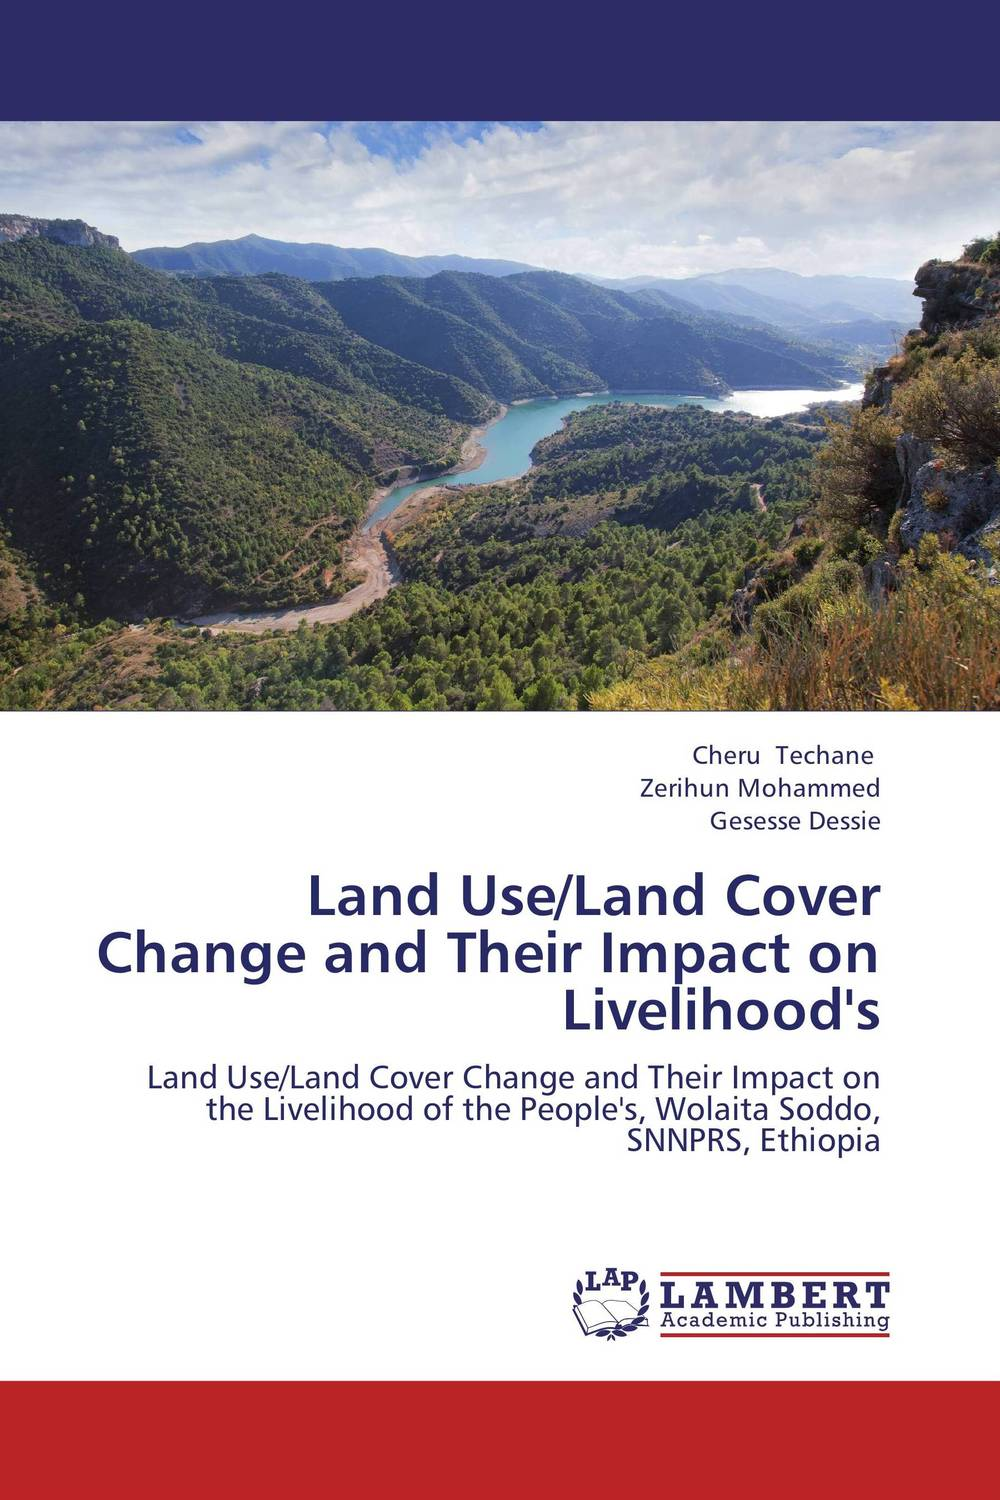 Land Use/Land Cover Change and Their Impact on Livelihood's land degradation assessment using geospatial technique